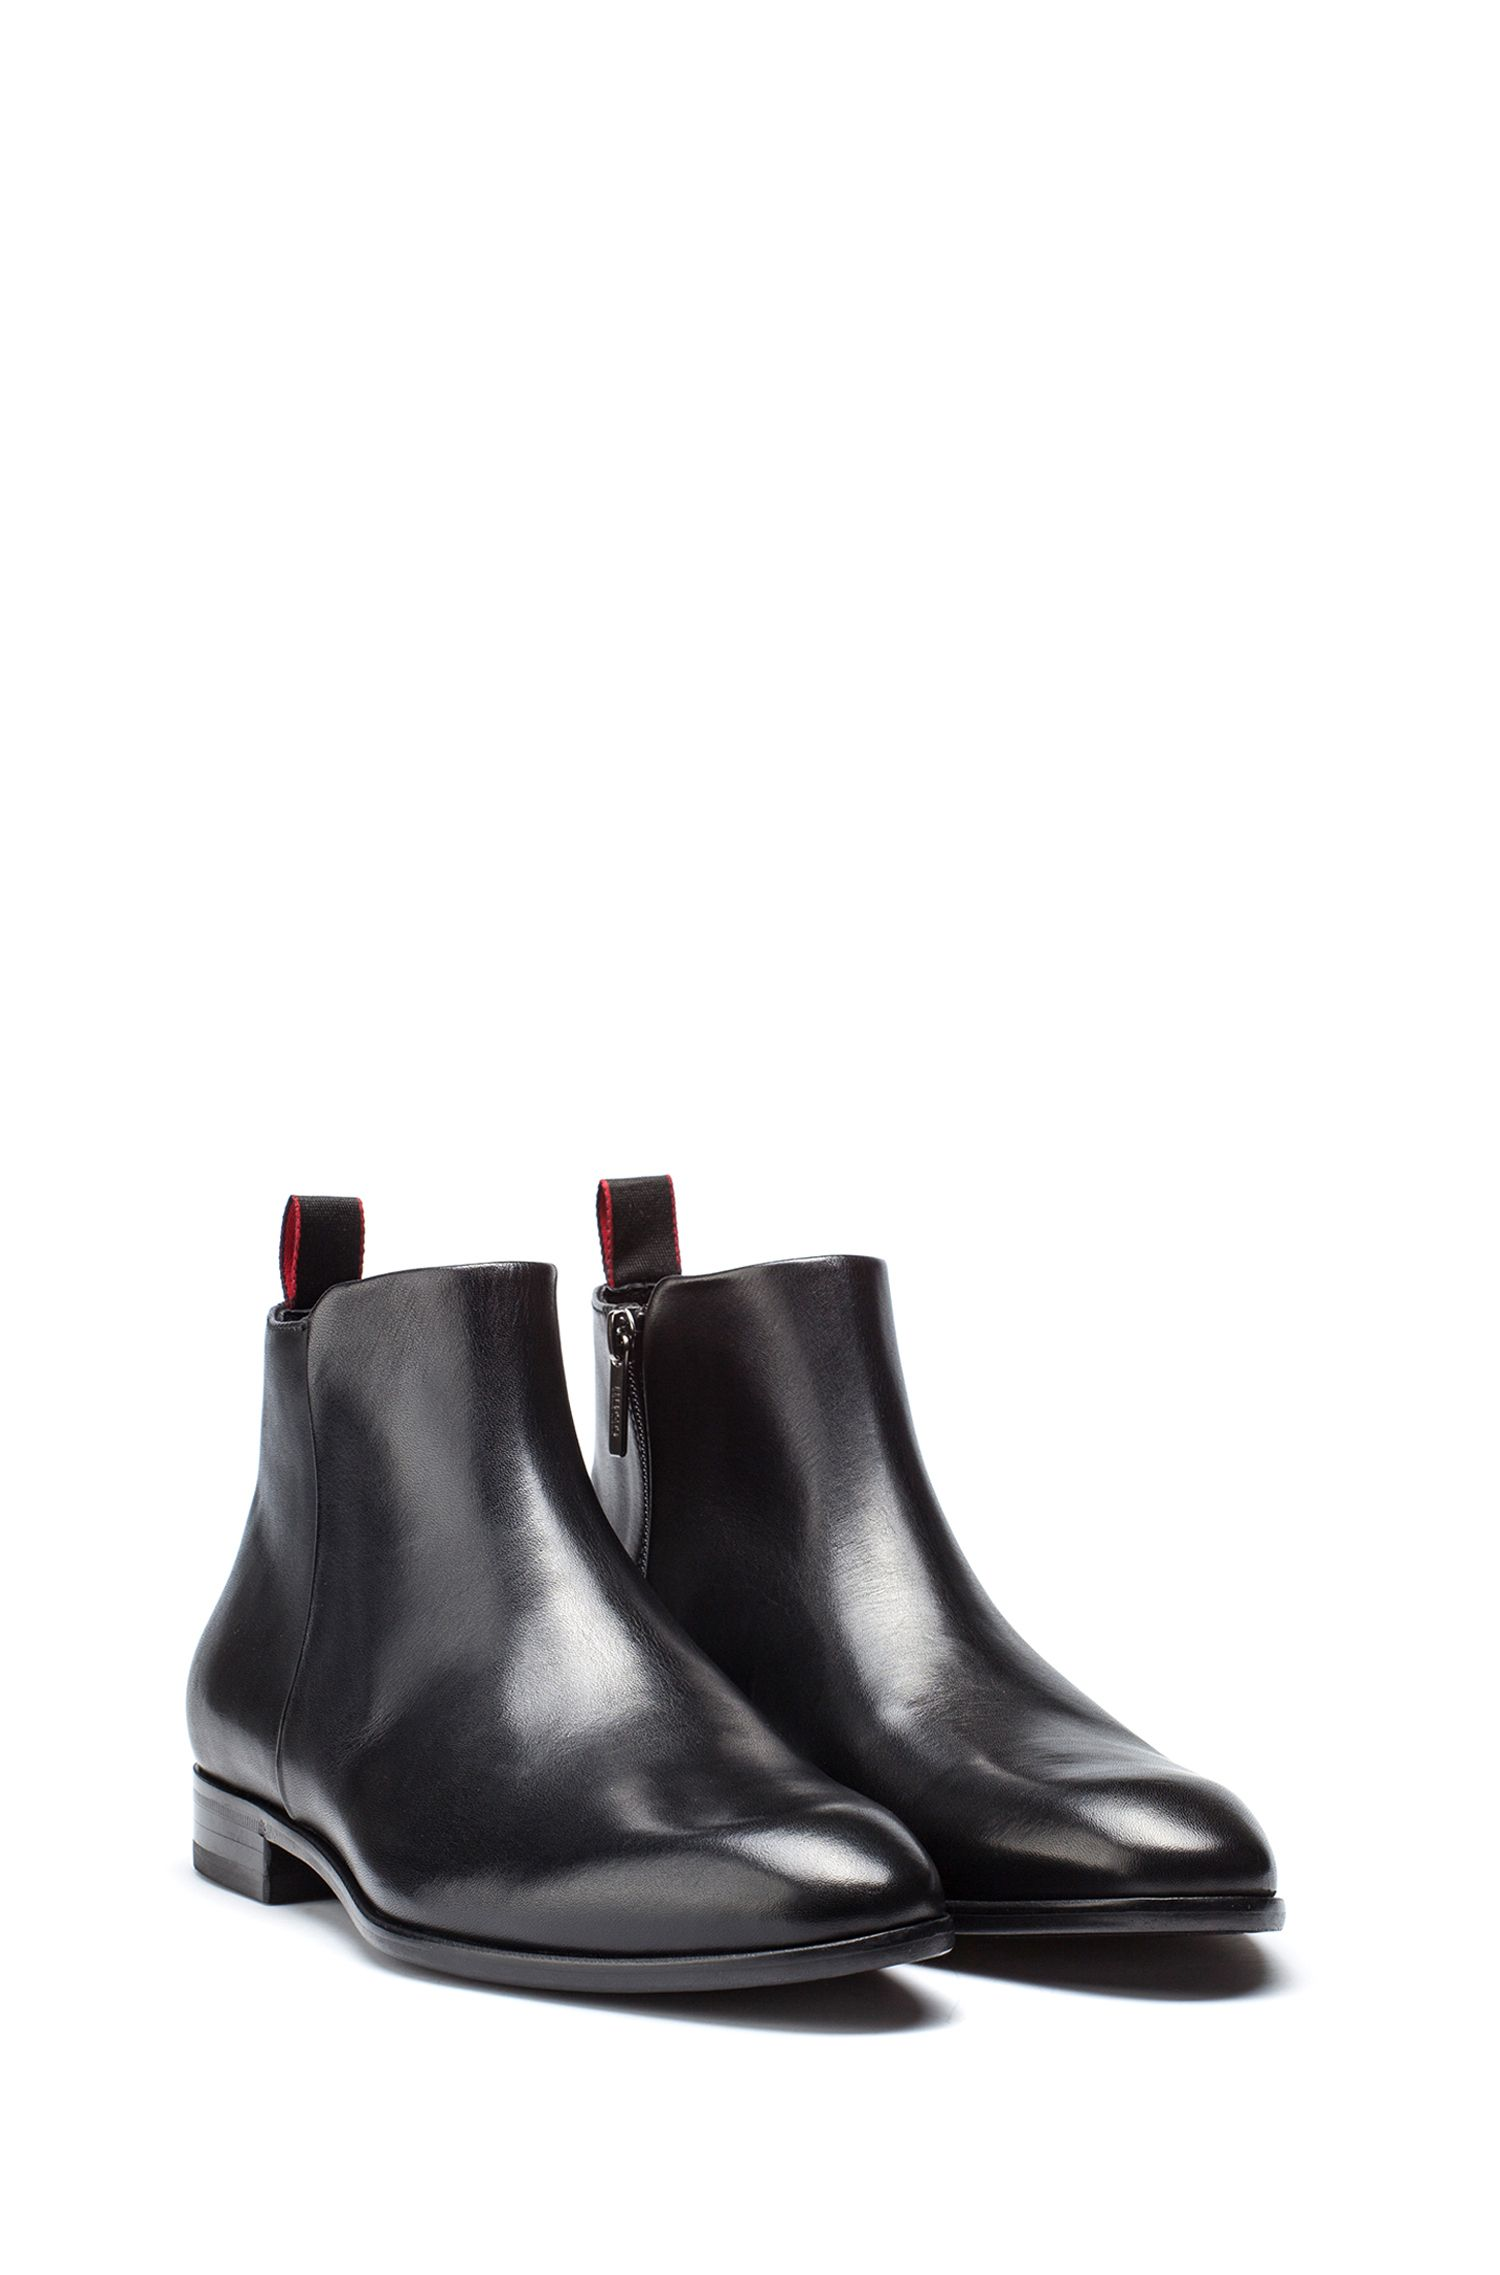 Smooth calf-leather boot with side zip